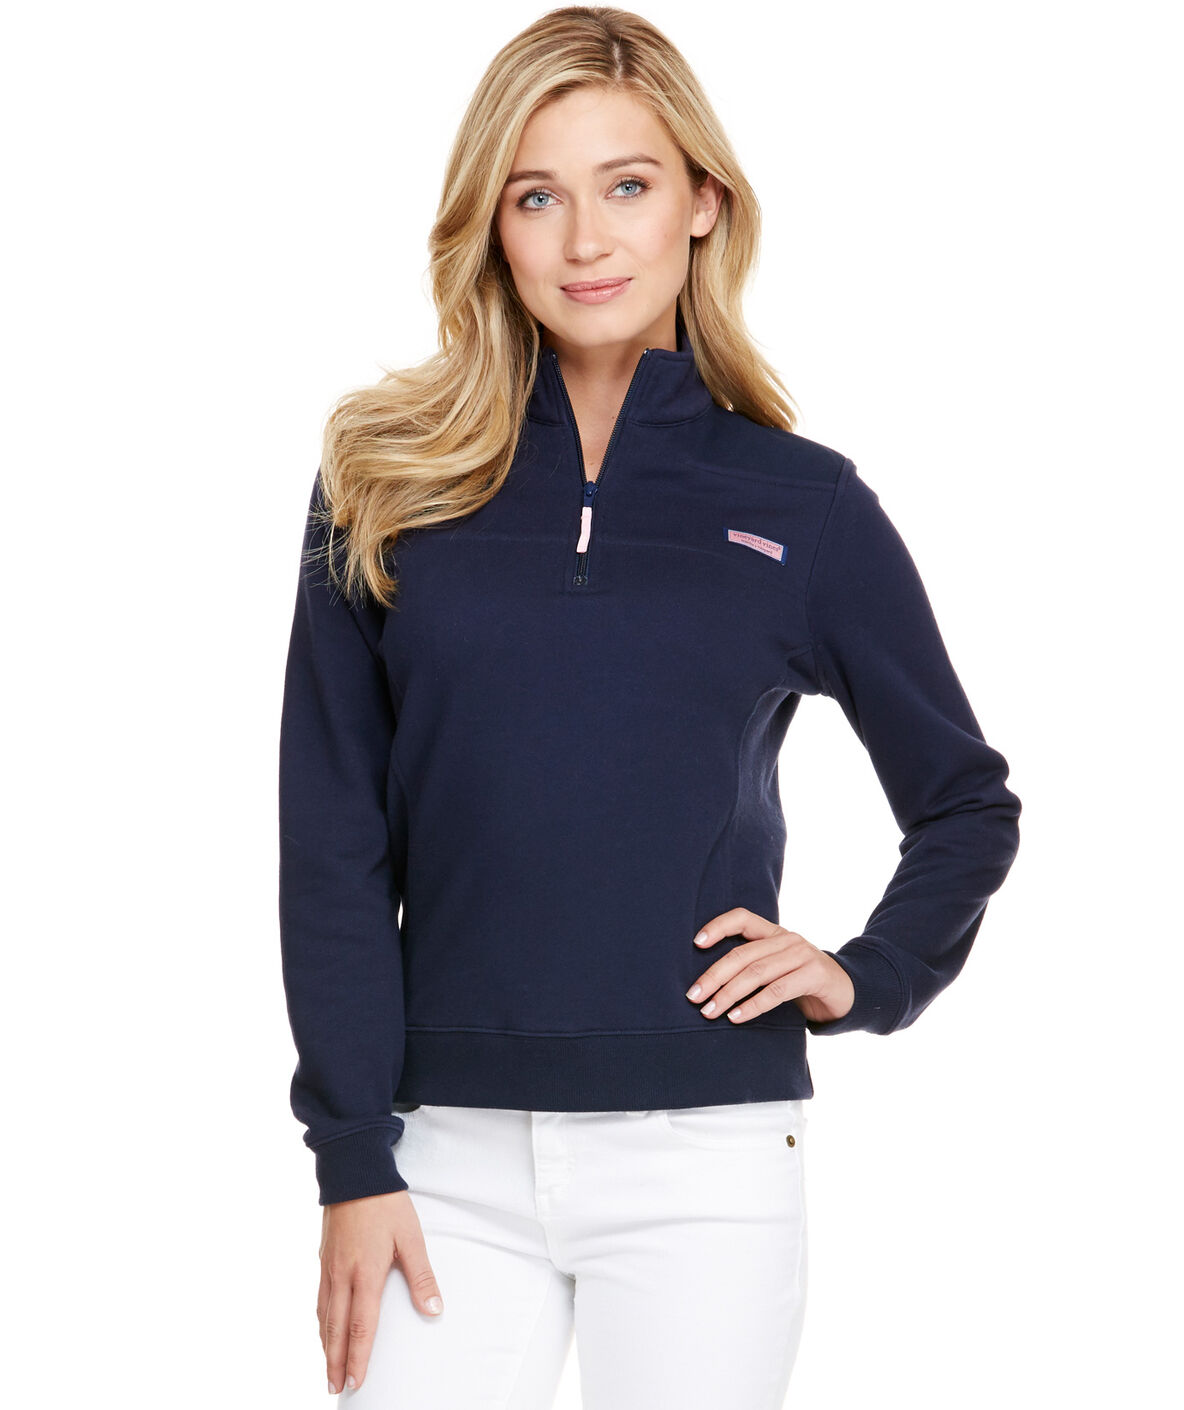 f9bd71adb77 Shop Women s Quarter Zip   Pullovers at vineyard vines